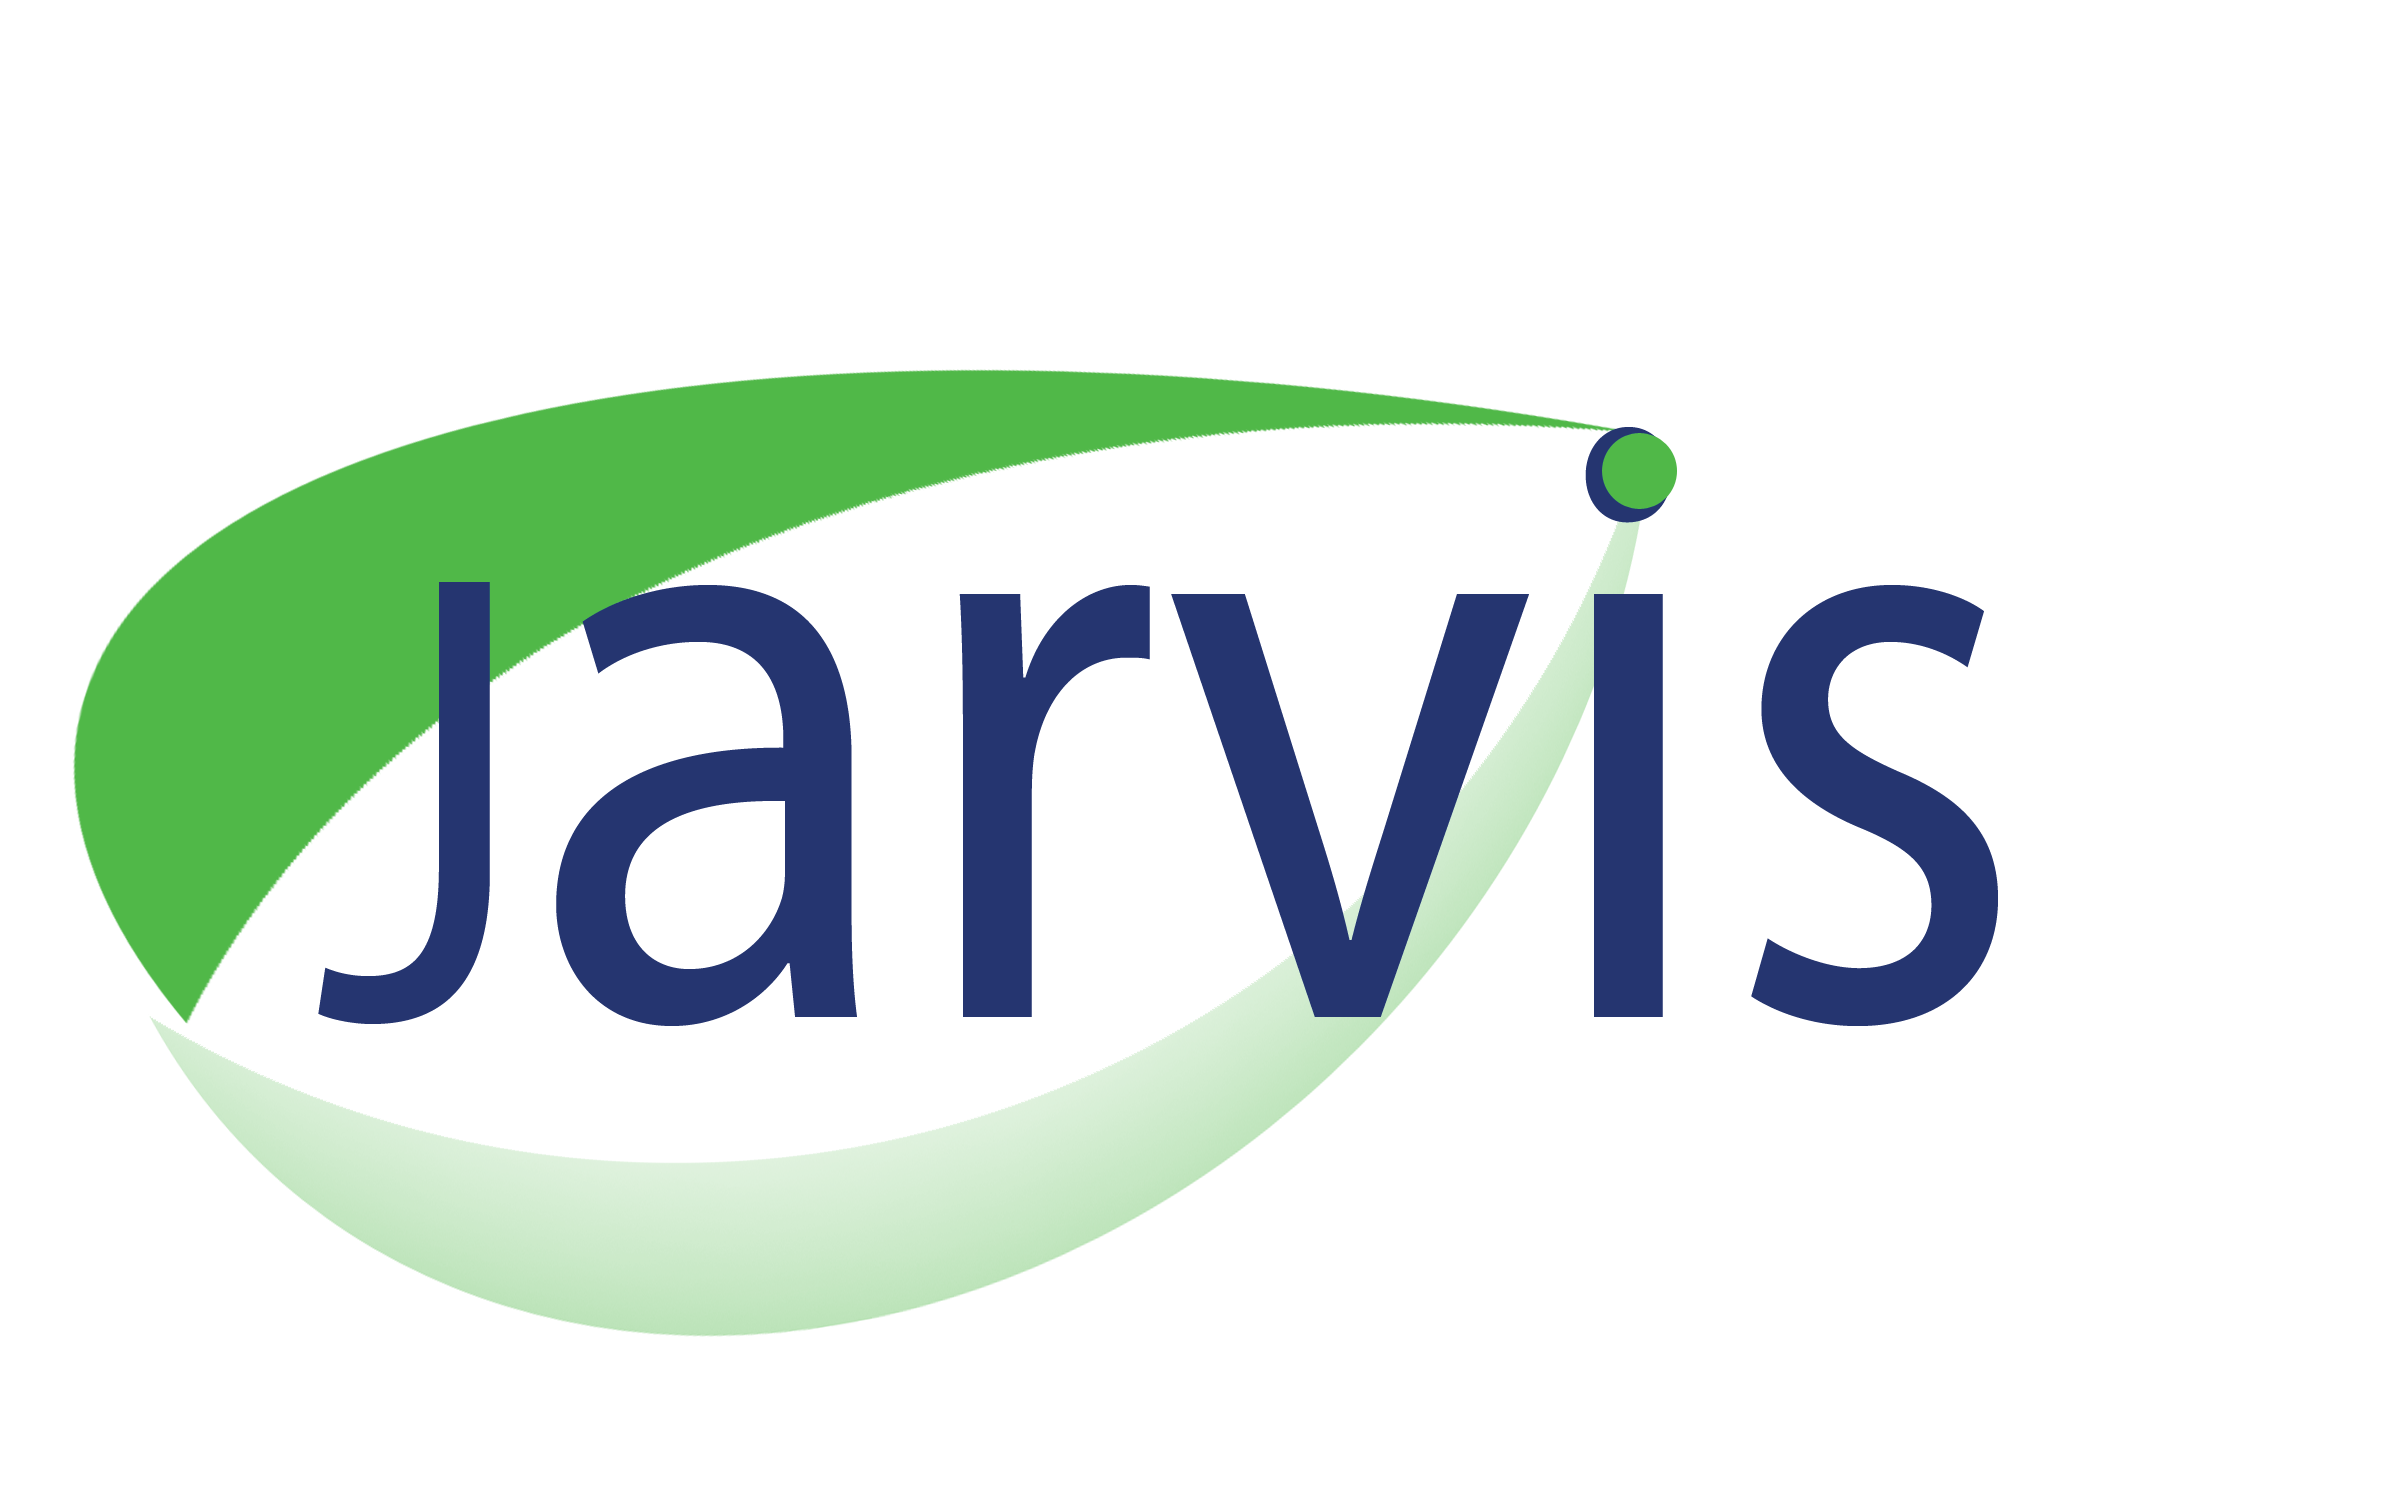 JARVIS_logo-FINAL.png